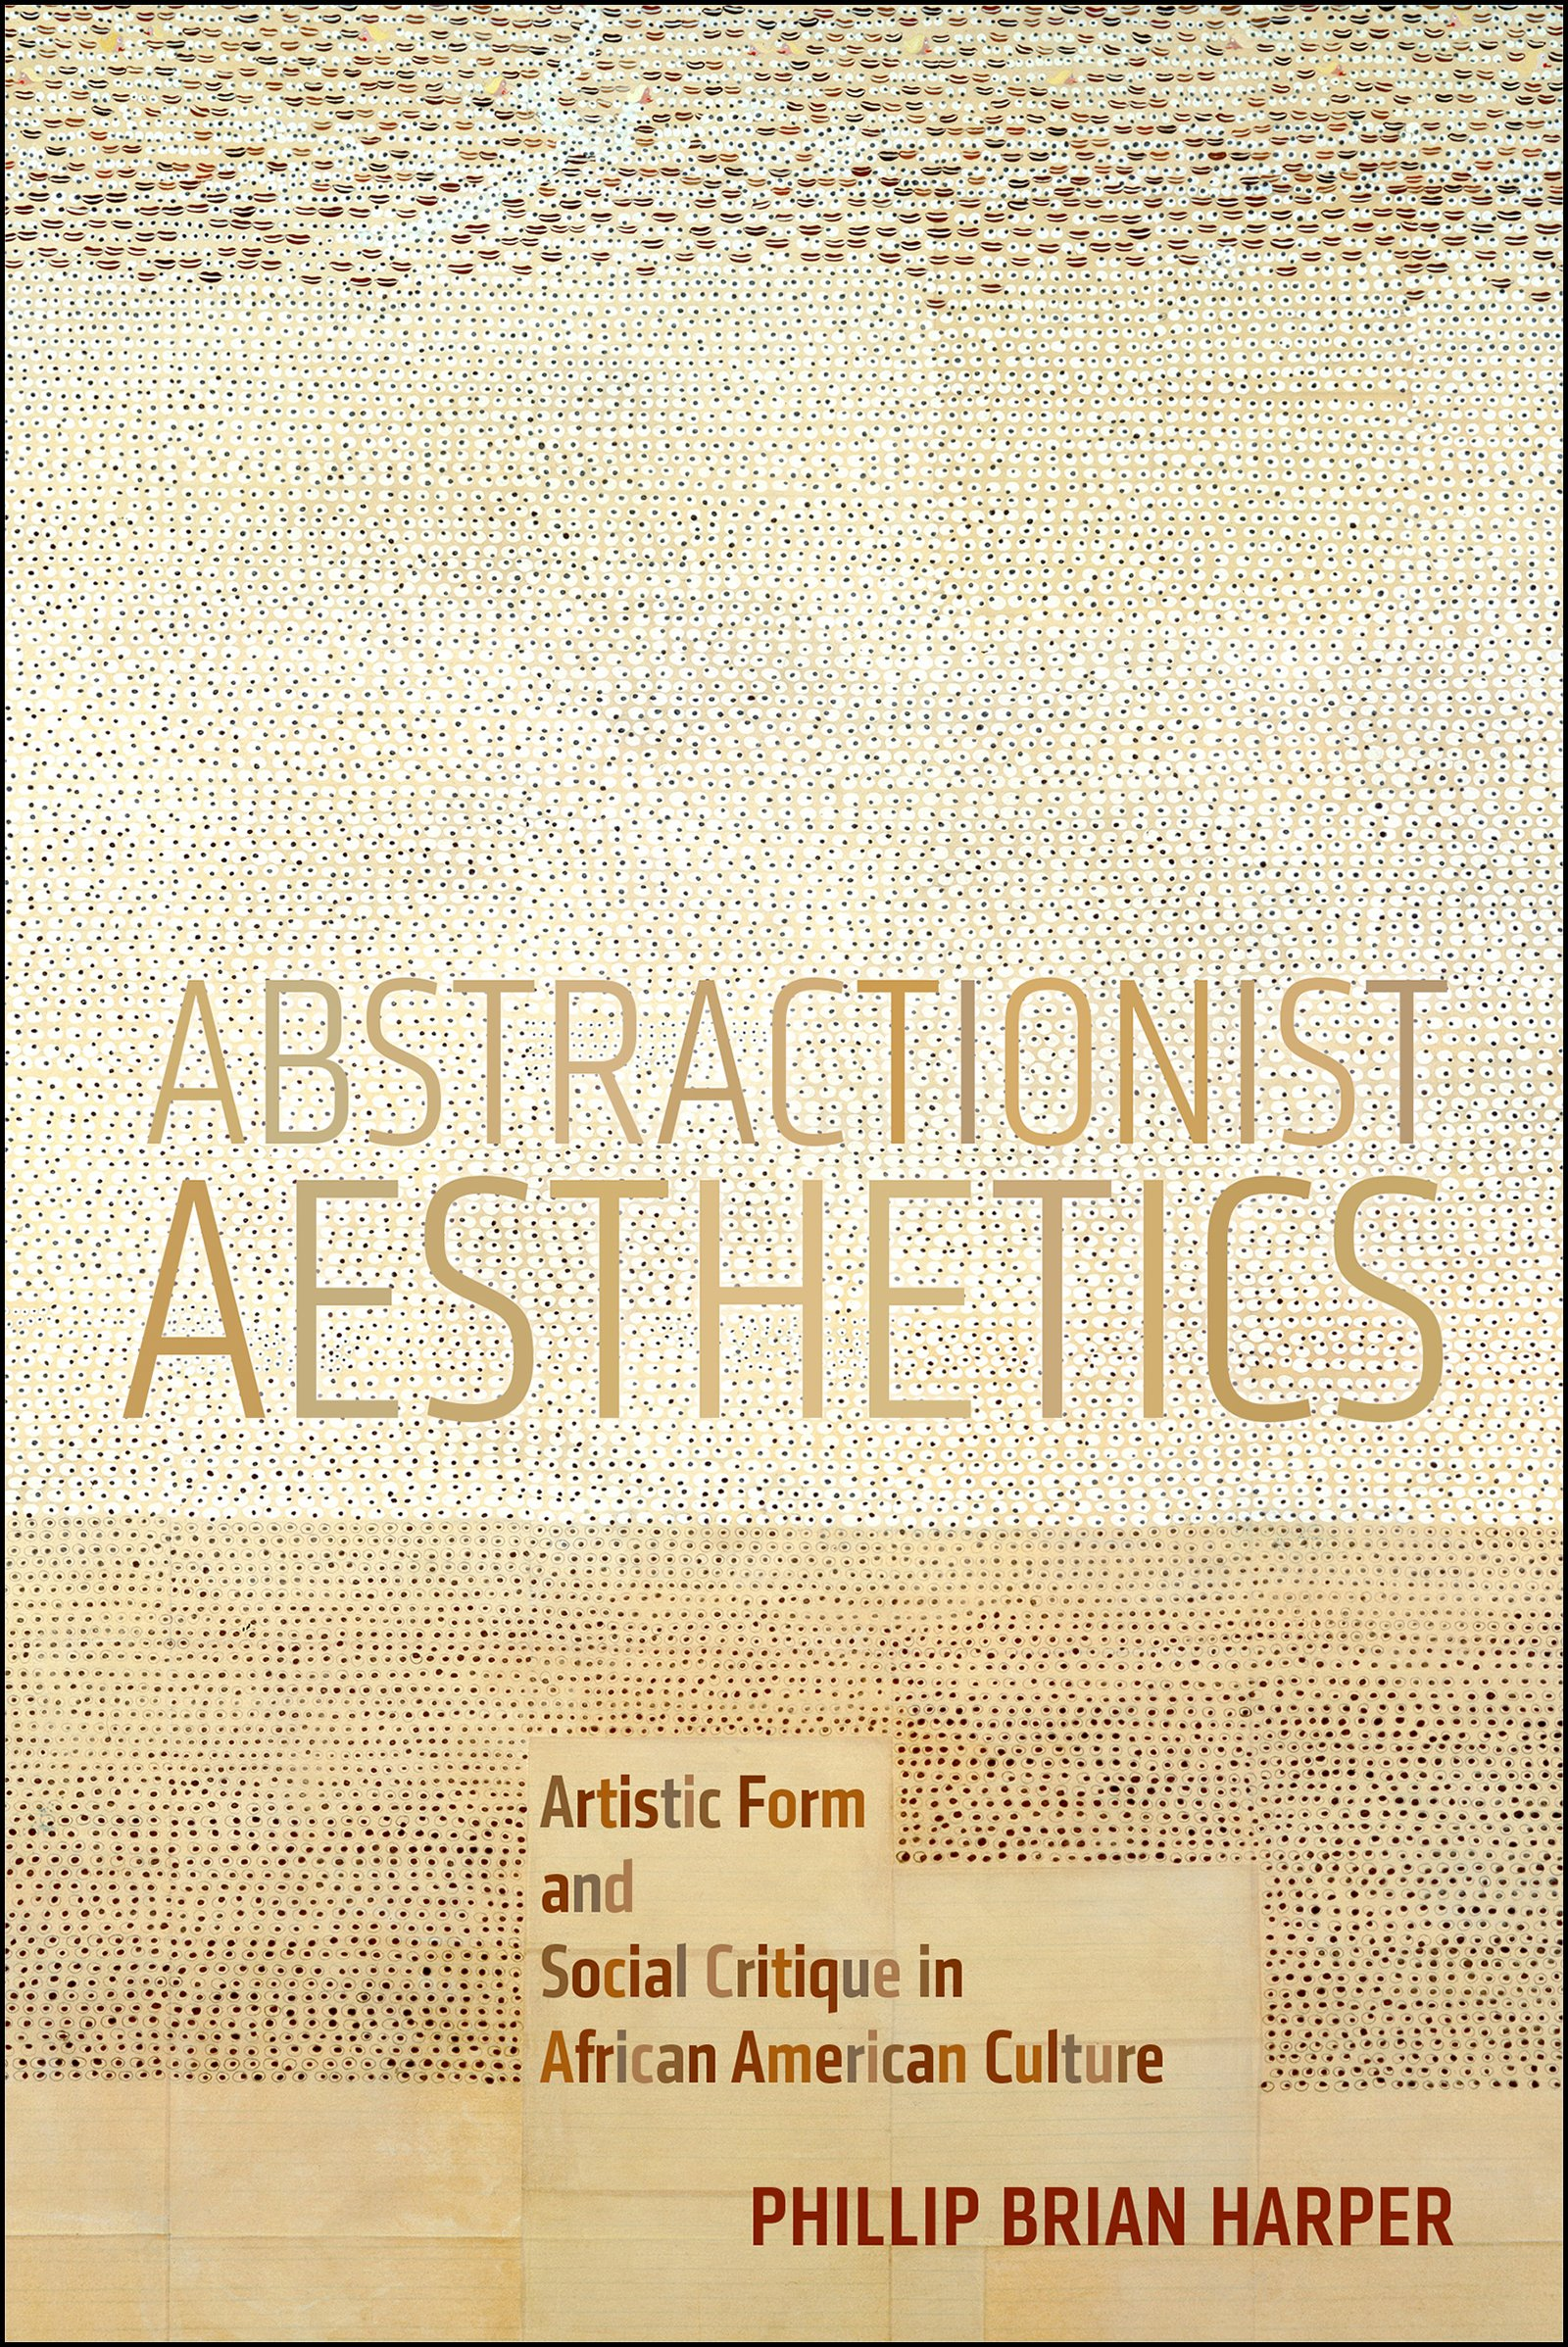 Abstractionist Aesthetics: Artistic Form and Social Critique in African American Culture (NYU Series in Social and Cultural Analysis) pdf